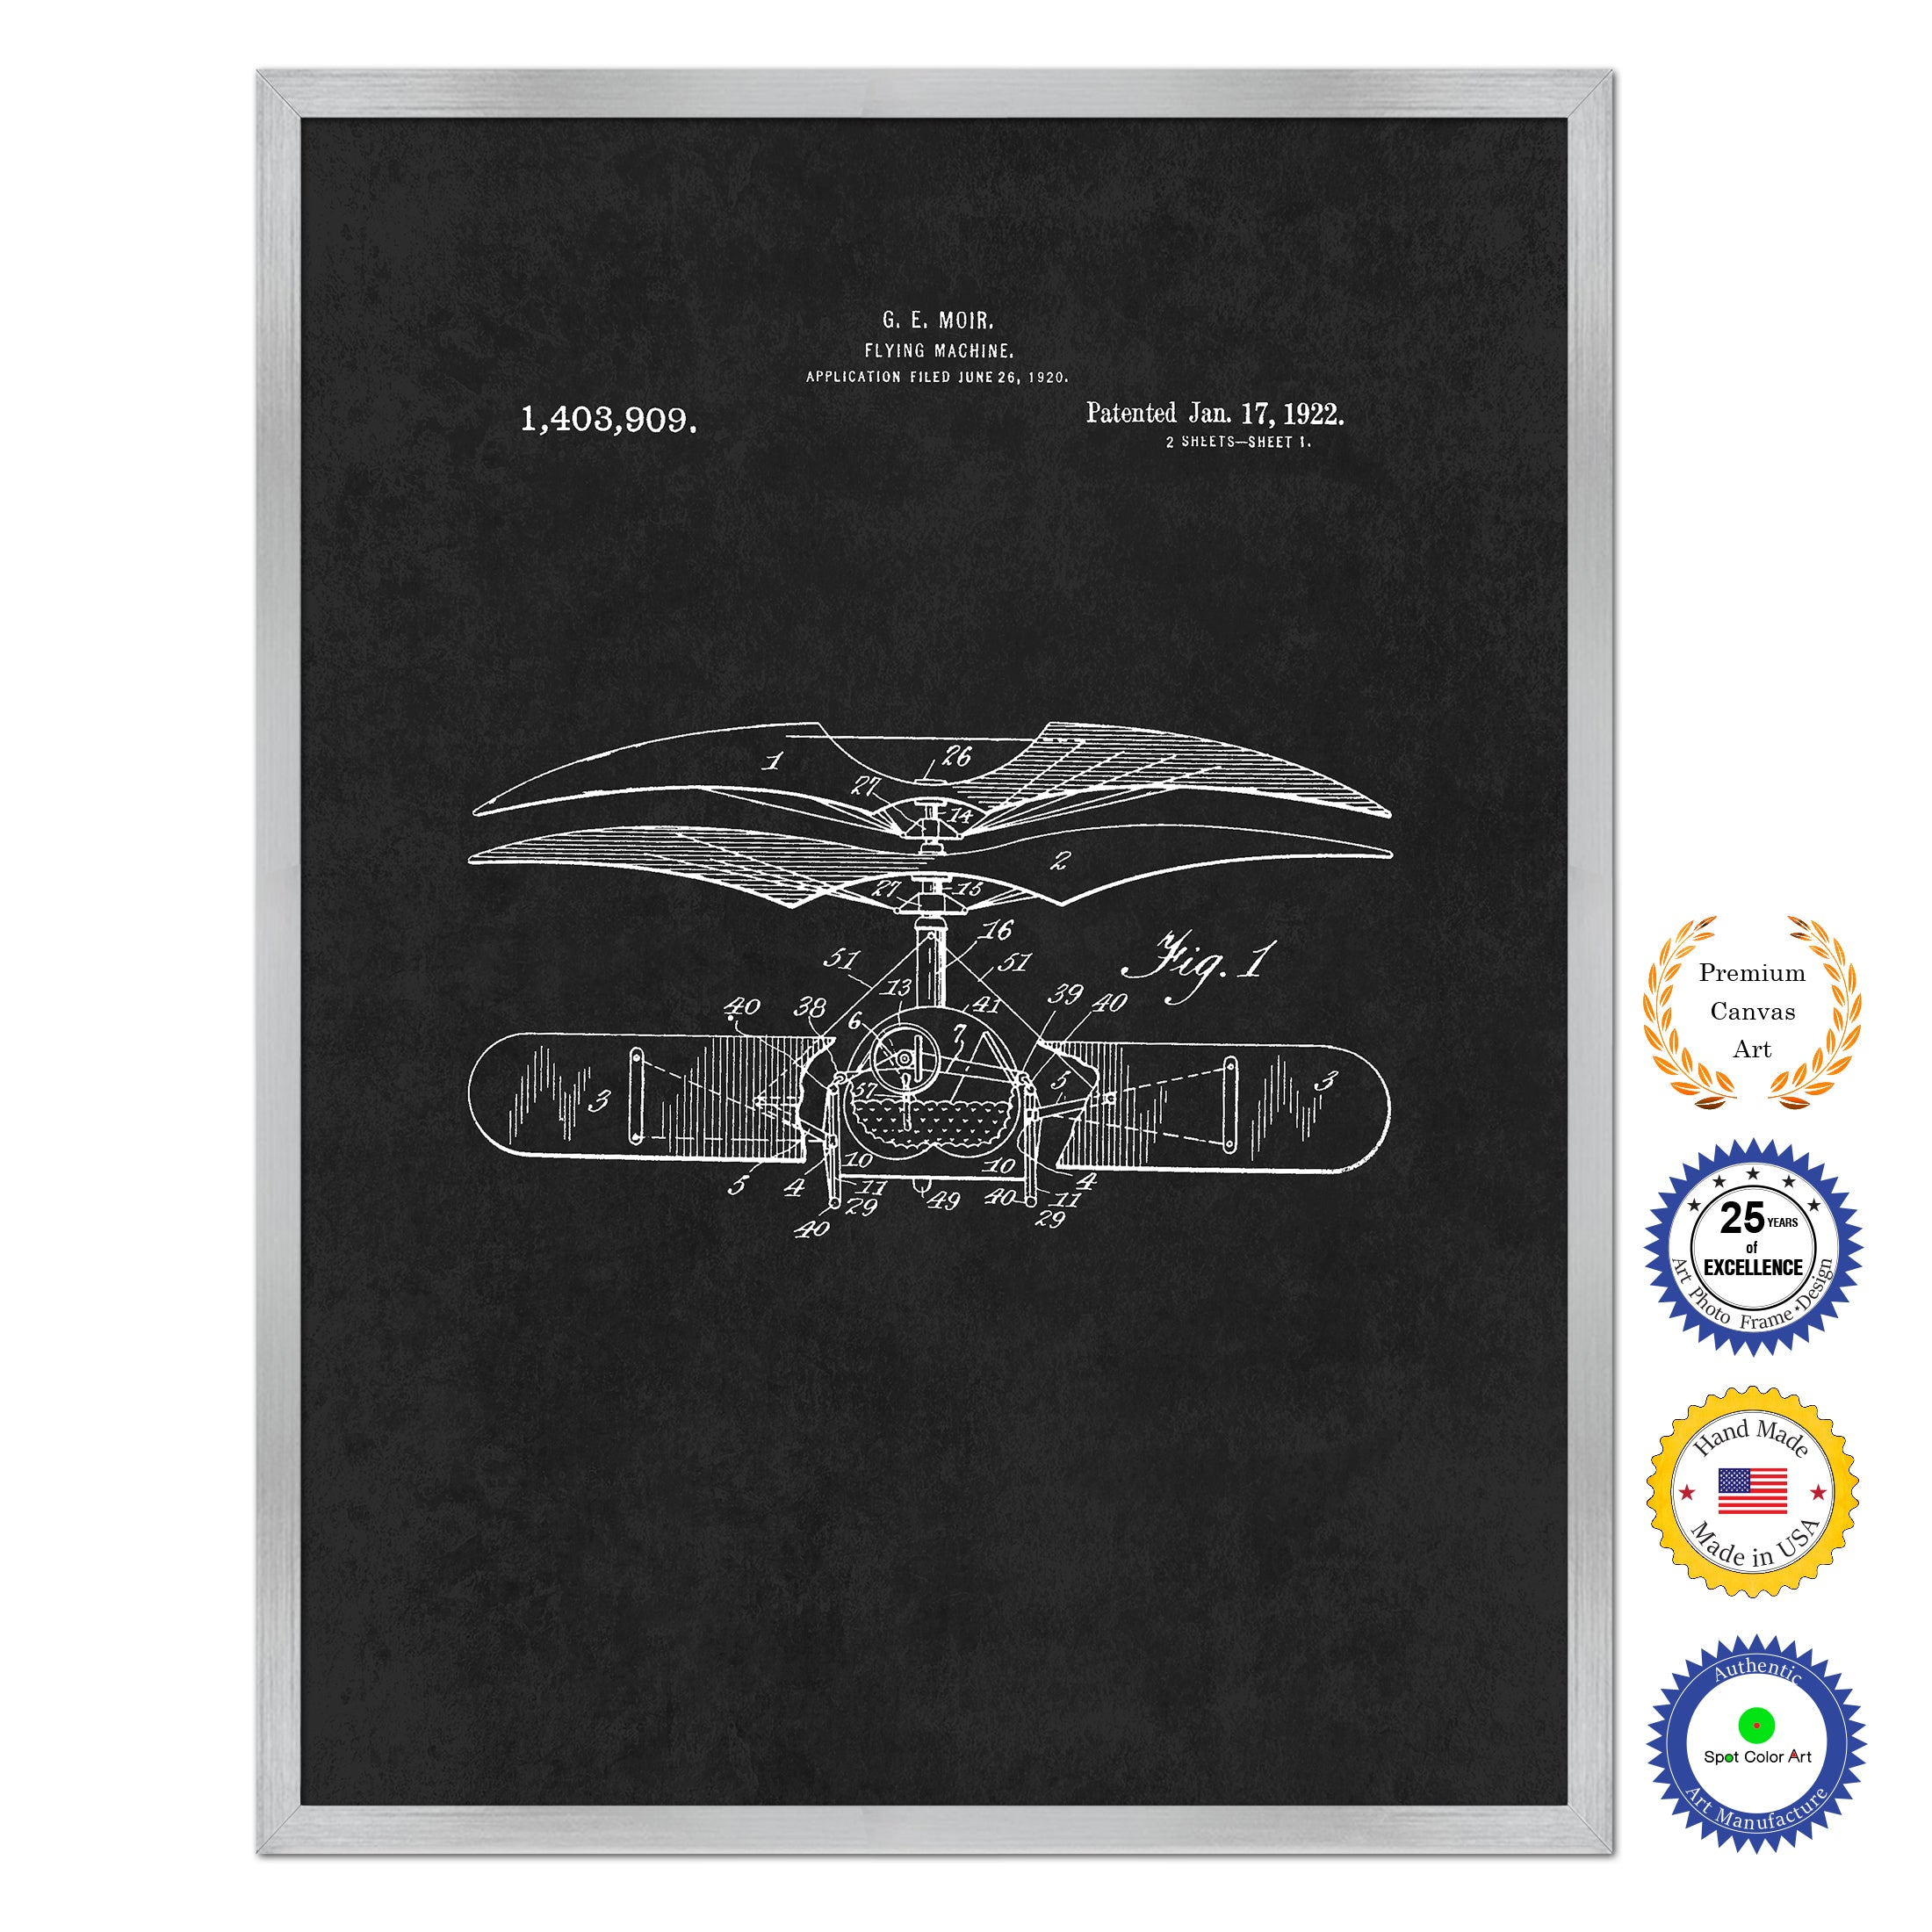 1922 Flying Machine Antique Patent Artwork Silver Framed Canvas Home Office Decor Great for Pilot Gift